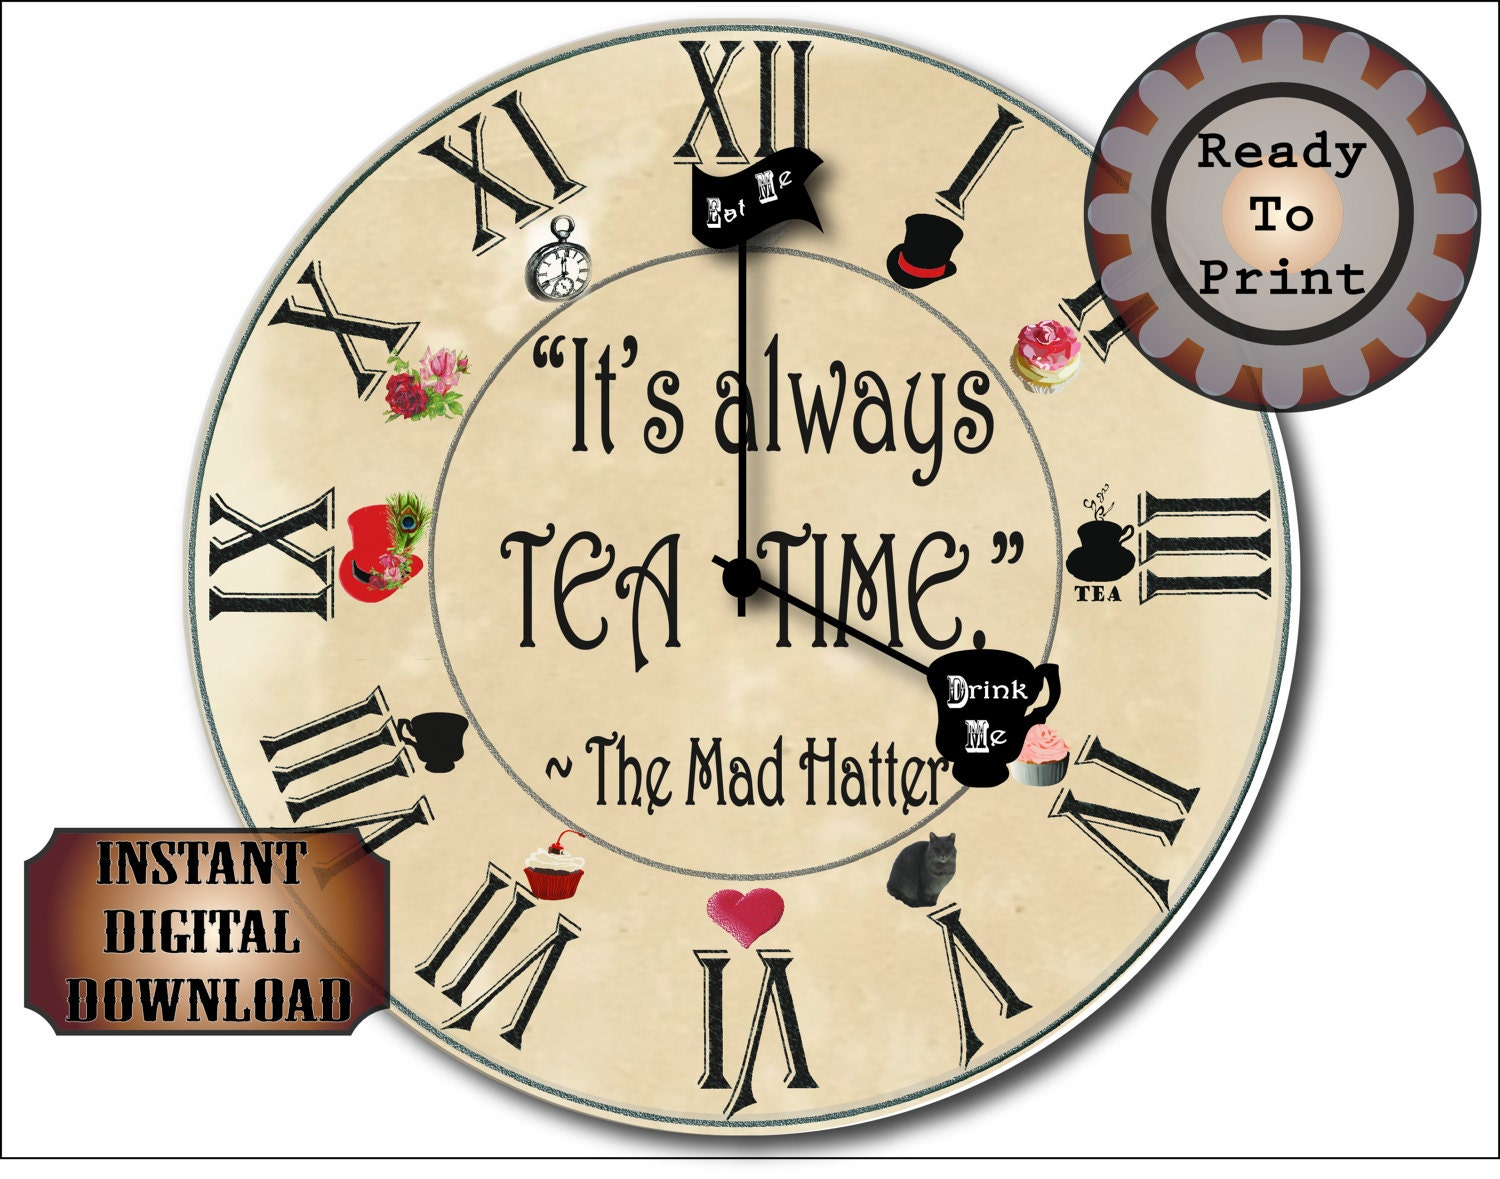 Mad Hatter Tea Party Invitation Template Free with amazing invitations design